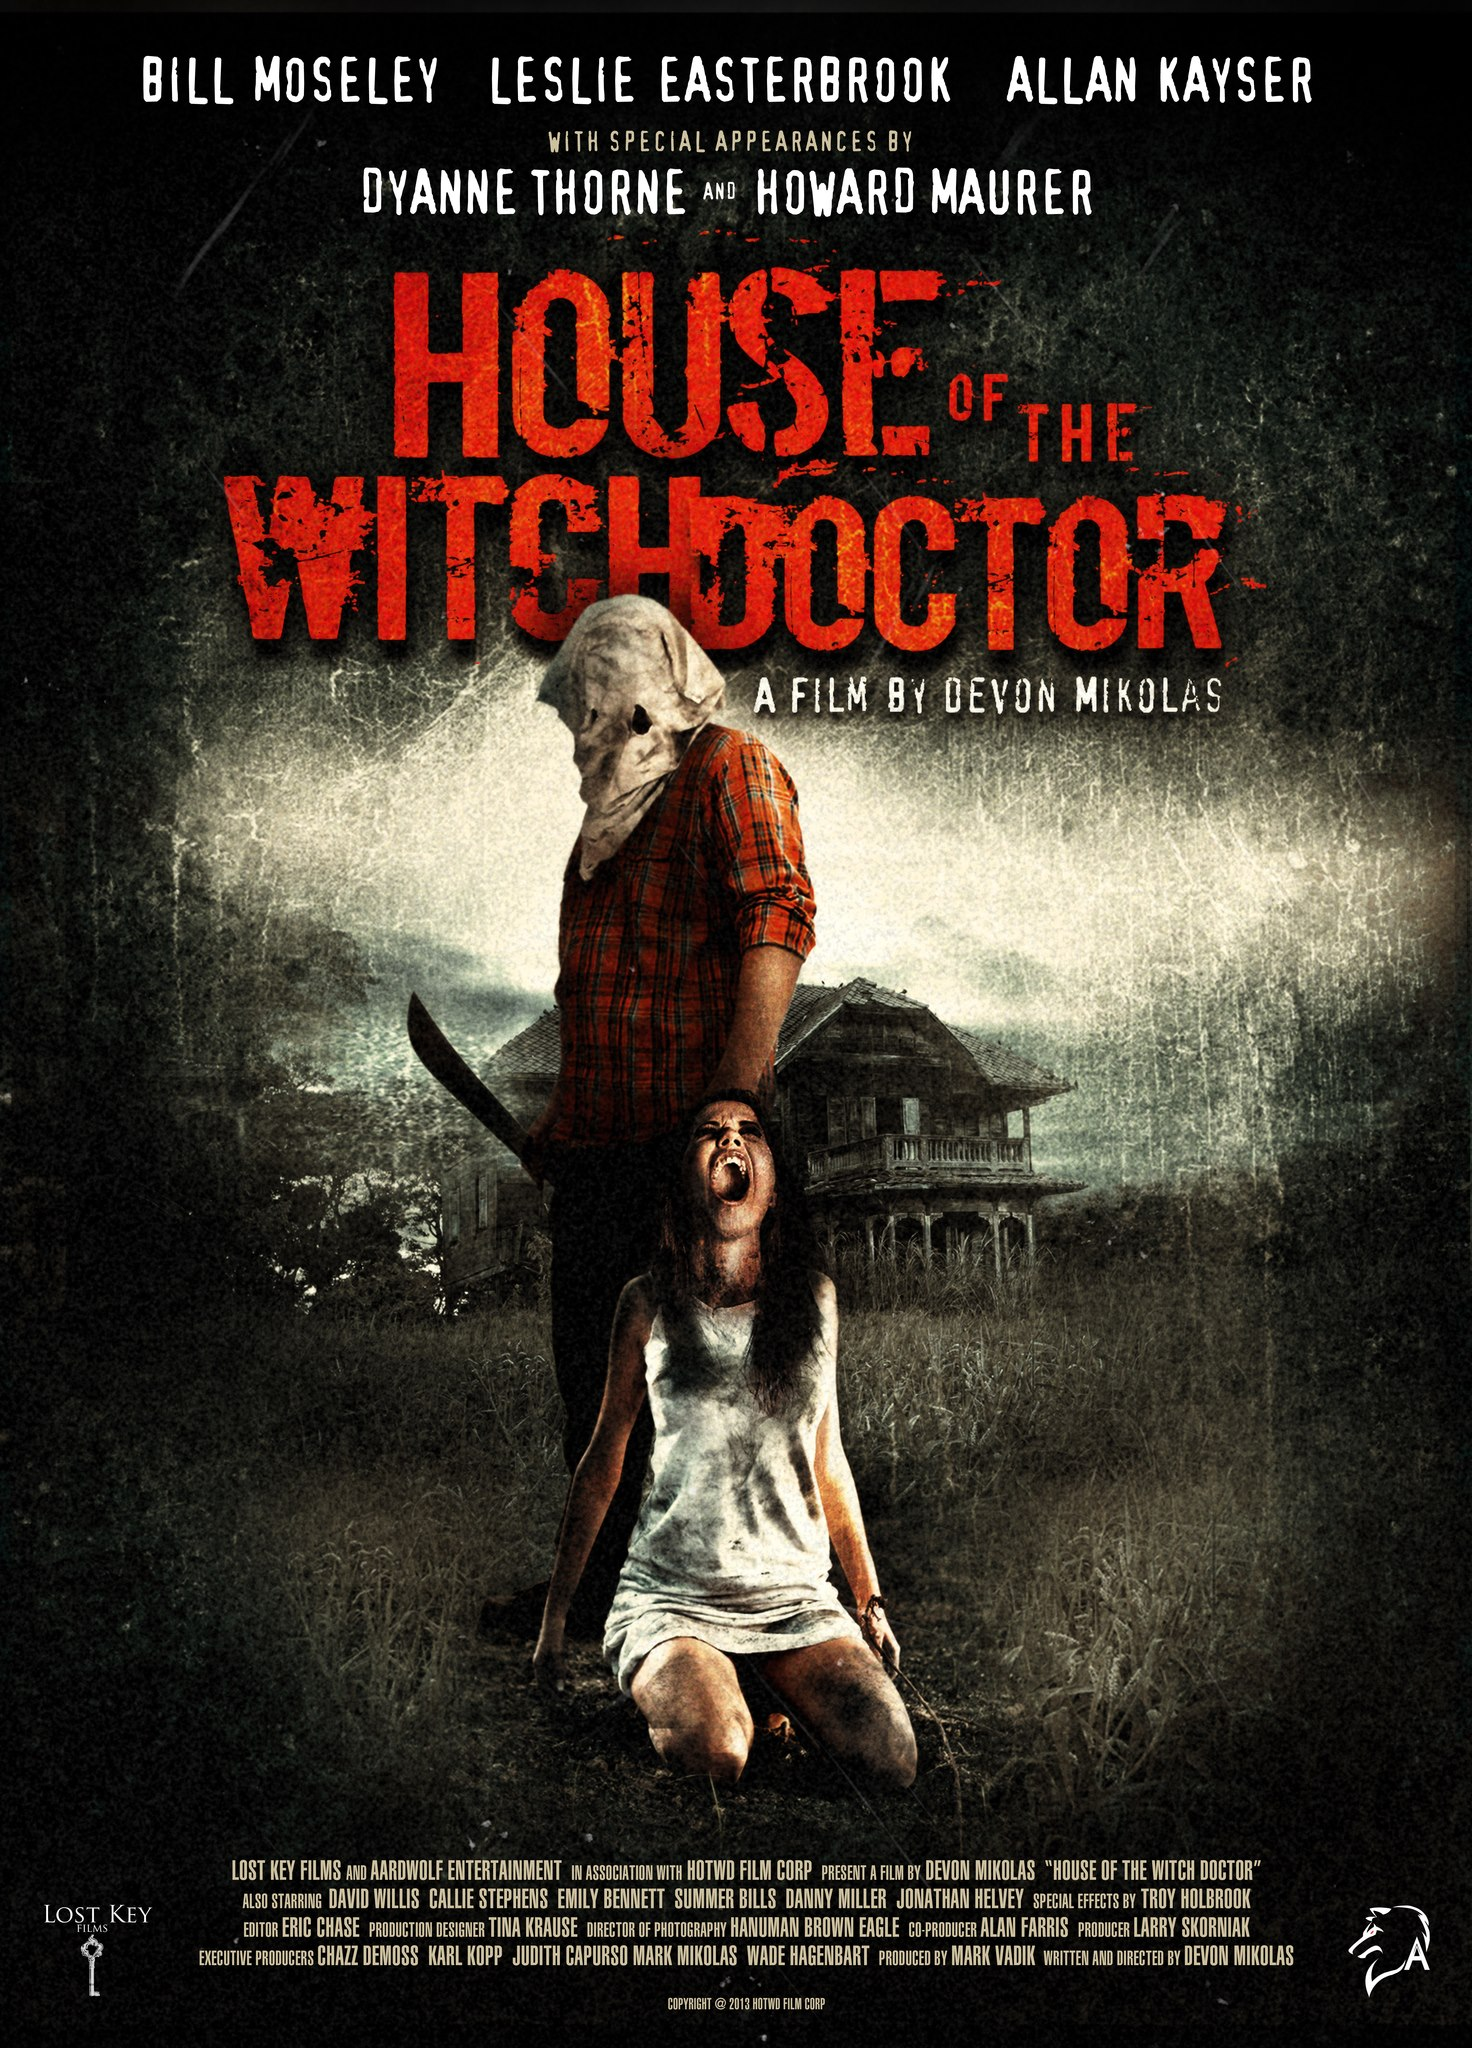 house-of-the-witchdoctor-cover